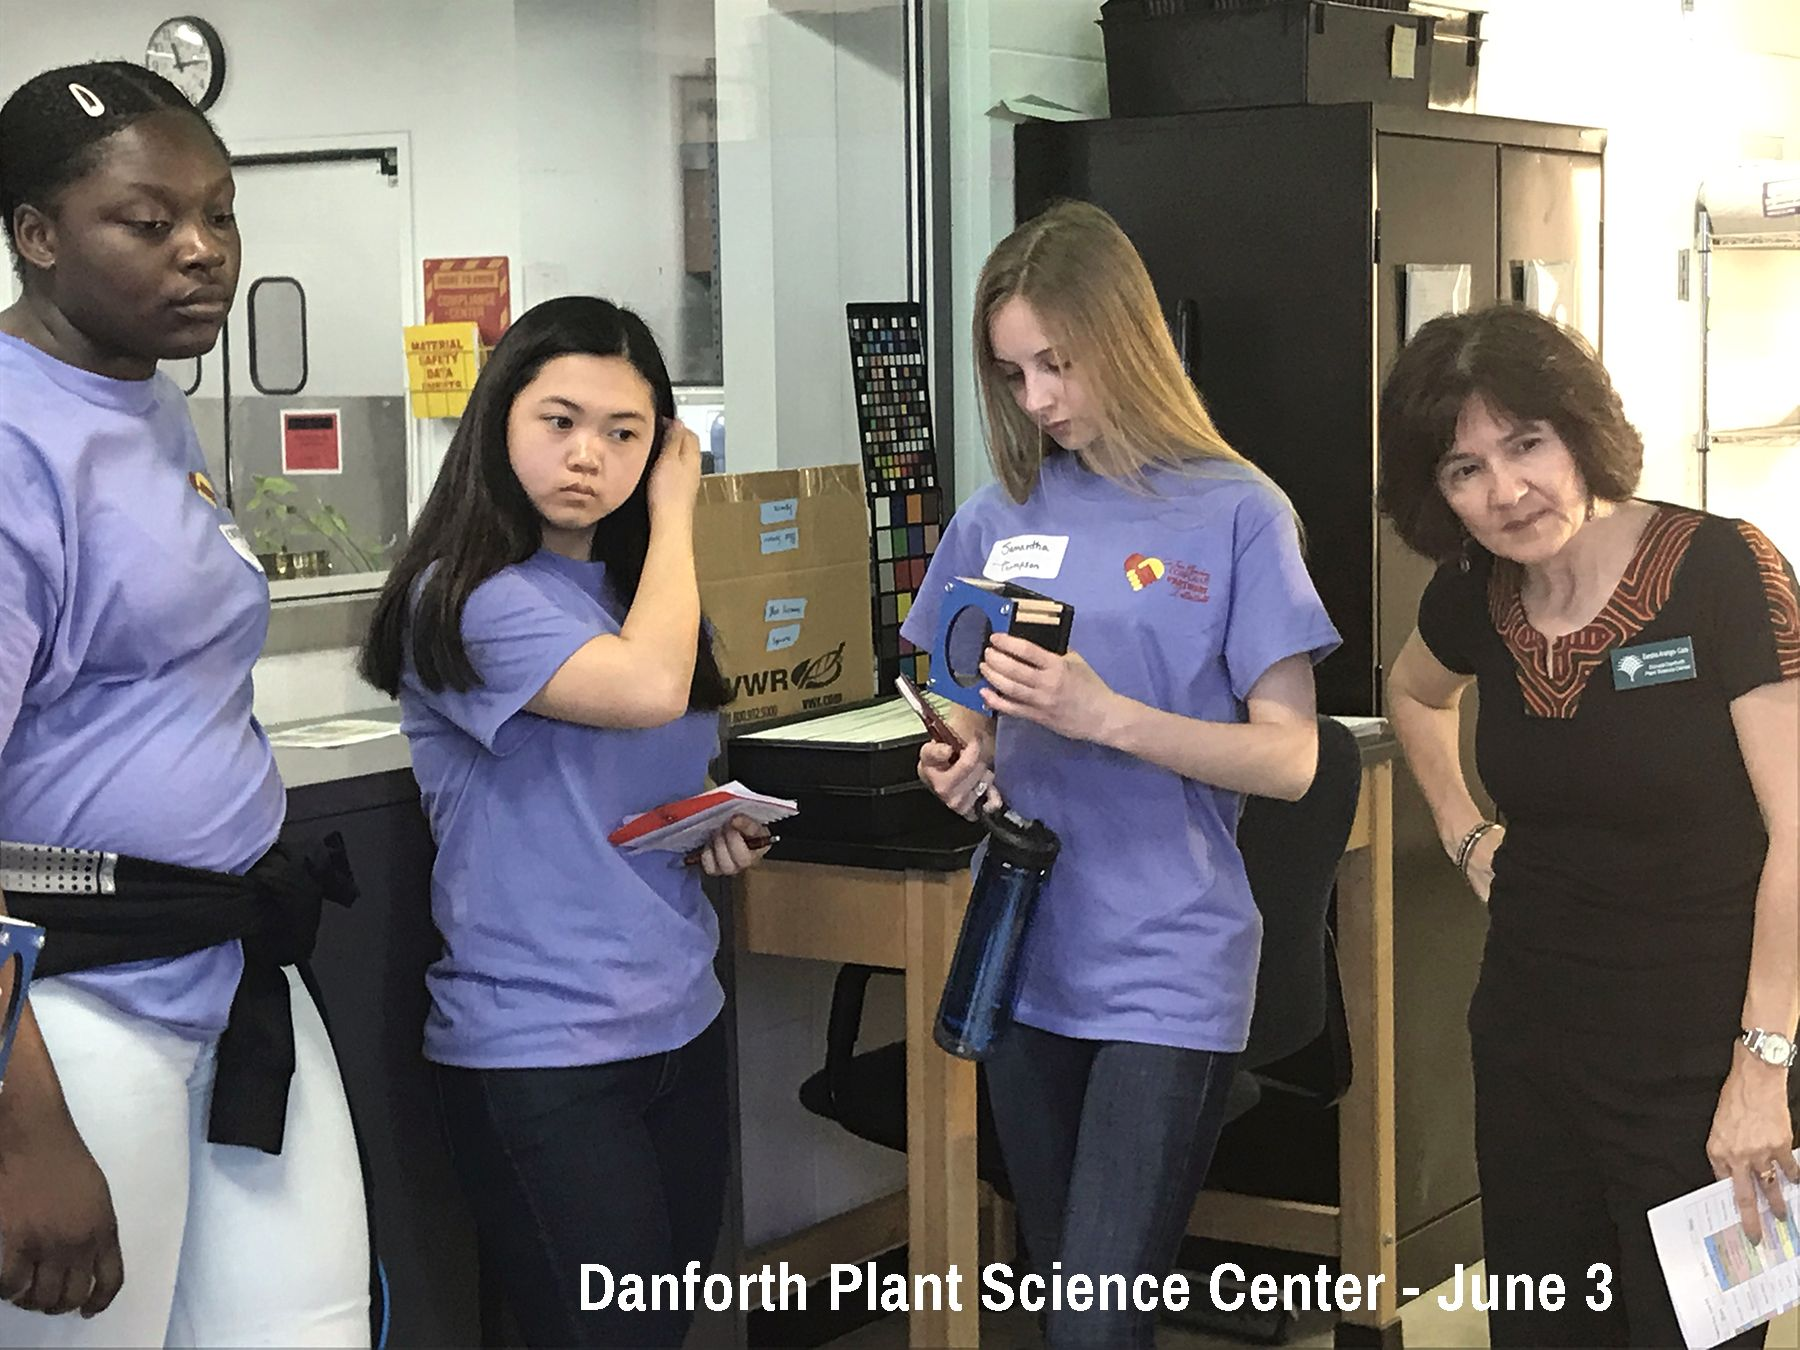 CJ students begin SEE Week at the Danforth Plant Science Center